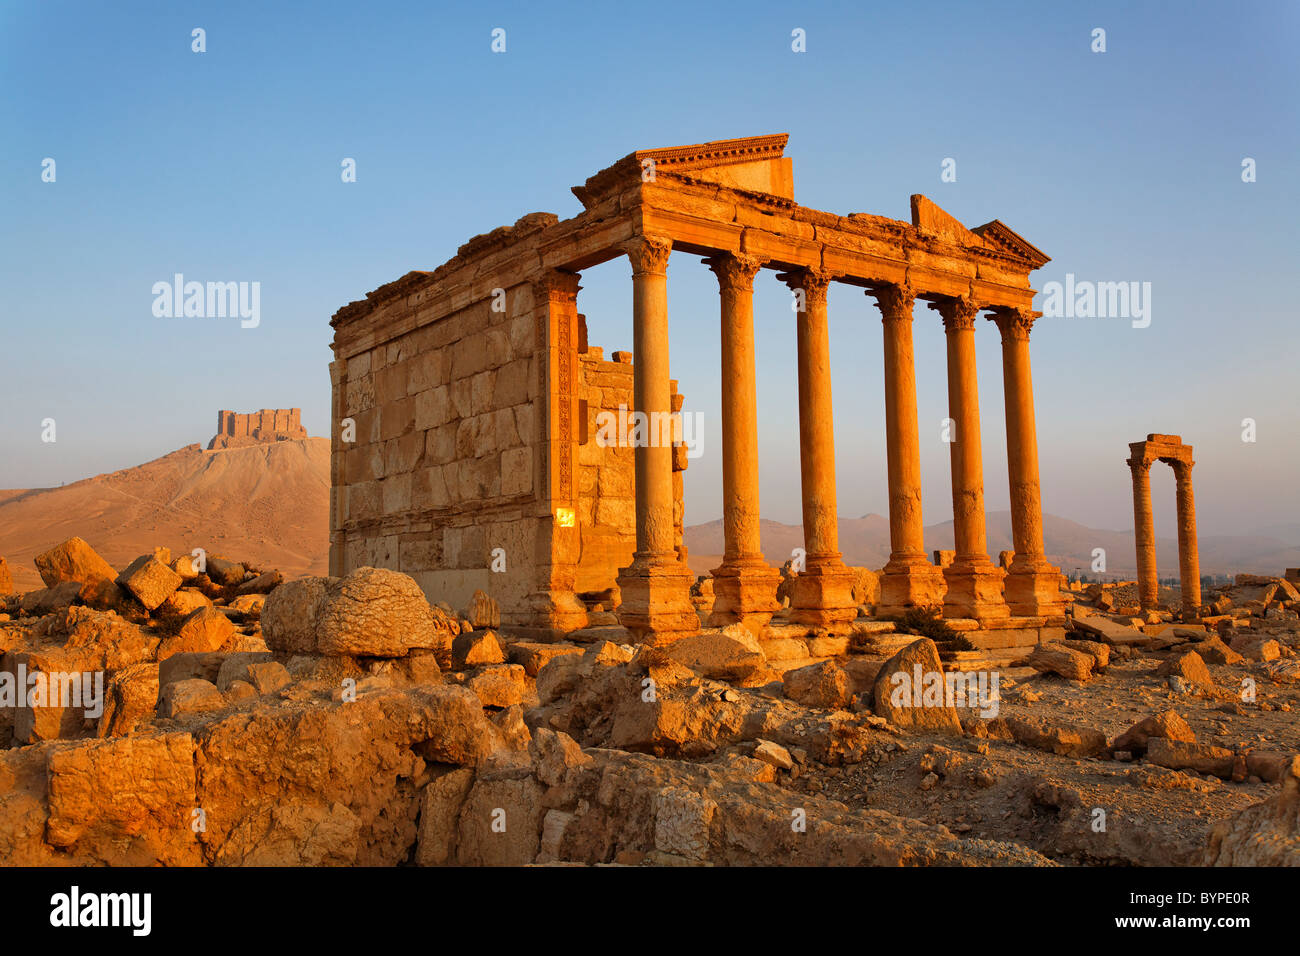 The Funerary Temple and Arab Castle at Palmyra, Syria - Stock Image